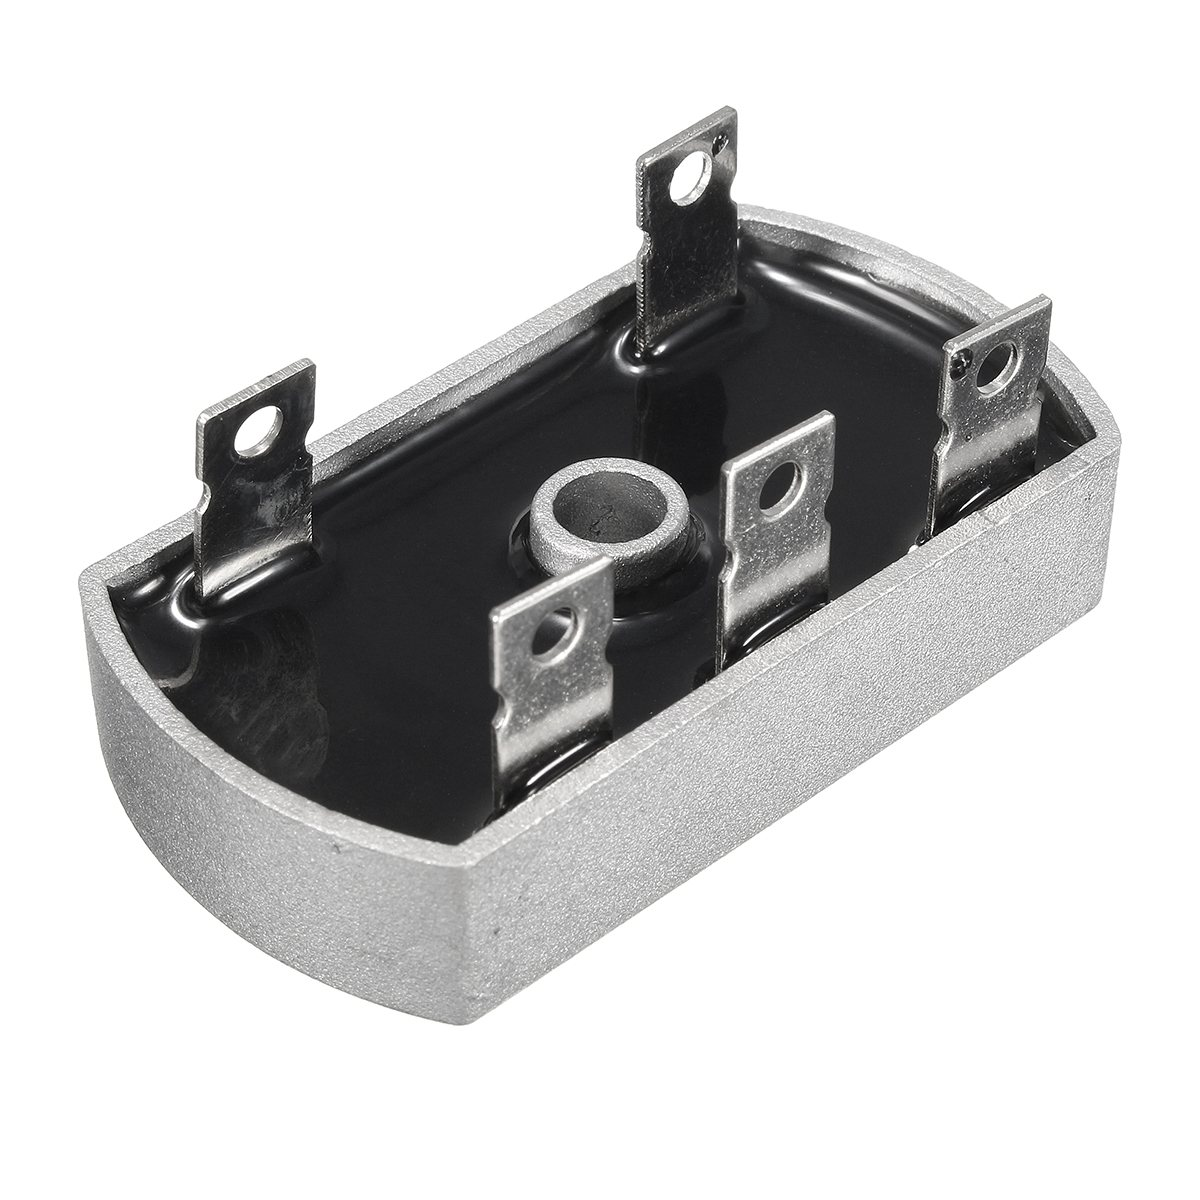 1pc 50a 1200v Aluminum Metal Case 3 Three Phase Diode Bridge Basic Circuit Other Rectifier 50amp Sql50a Module Rectifiers In From Electronic Components Supplies On